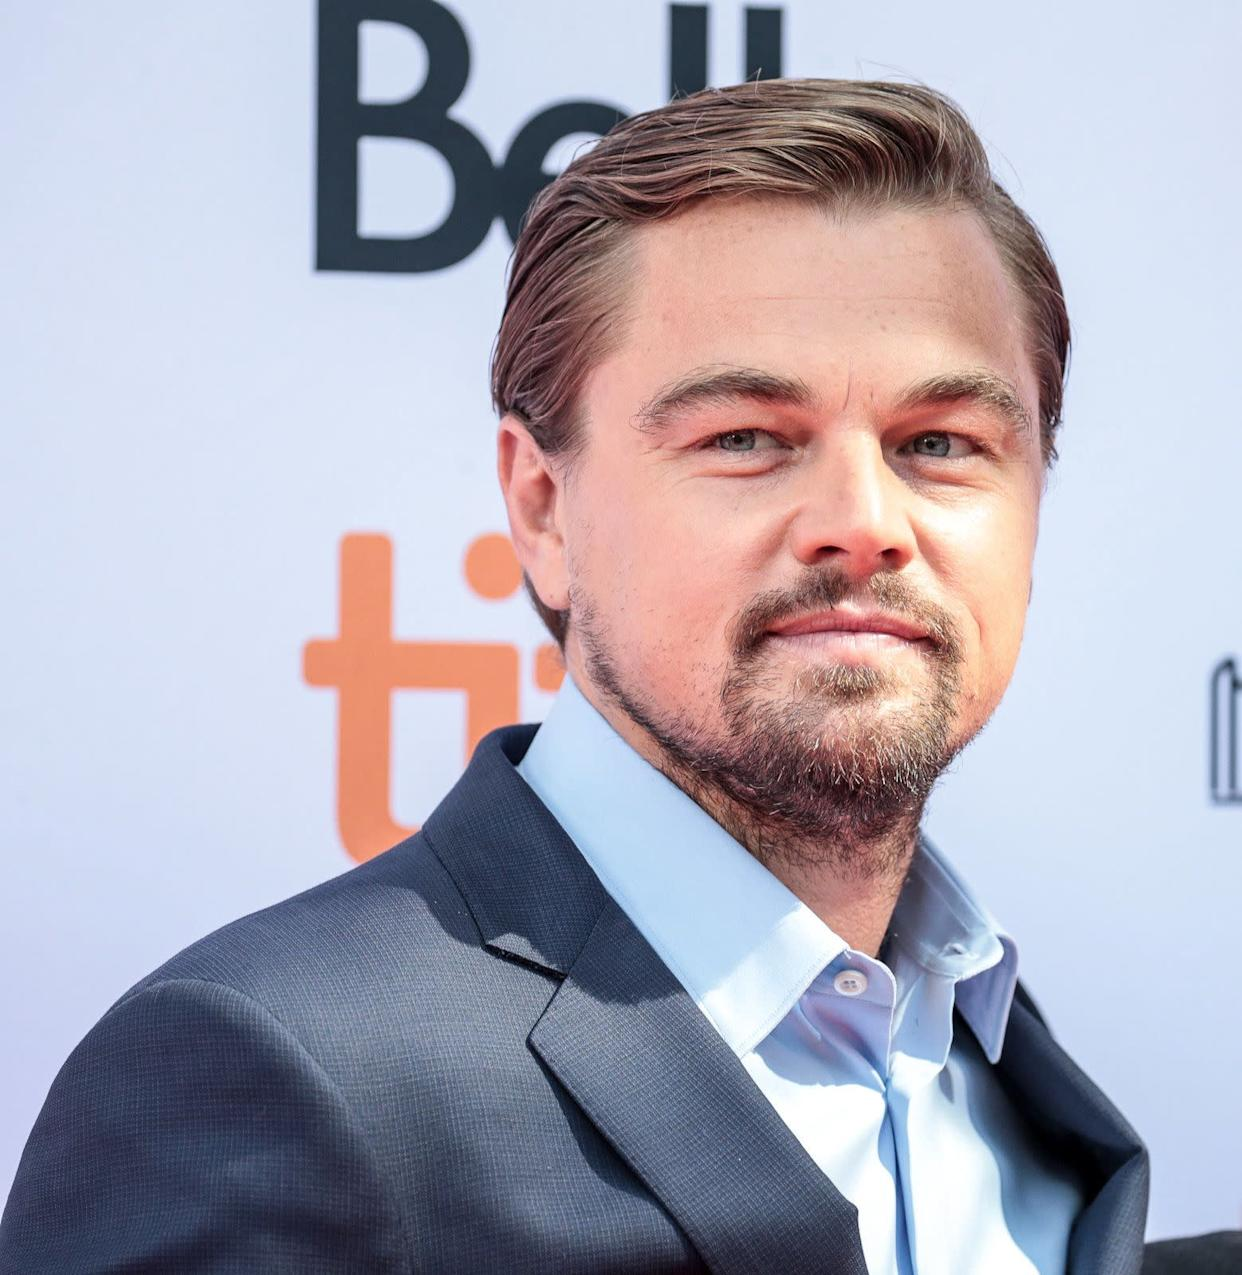 "Leonardo DiCaprio worked with Weinstein on&nbsp;blockbuster films like &ldquo;Gangs of New York,&rdquo; &ldquo;The Aviator,&rdquo; and &ldquo;Django Unchained.&rdquo;<br><br>""There is no excuse for sexual harrassment or sexual assault-- no matter who you are and no matter what profession,"" <a href=""https://www.facebook.com/LeonardoDiCaprio/posts/10154810955527116"" rel=""nofollow noopener"" target=""_blank"" data-ylk=""slk:DiCarpio&nbsp;said in a Facebook Post."" class=""link rapid-noclick-resp"">DiCarpio&nbsp;said in a Facebook Post.</a>&nbsp;""I applaud the strength and courage of the women who came forward and made their voices heard."""